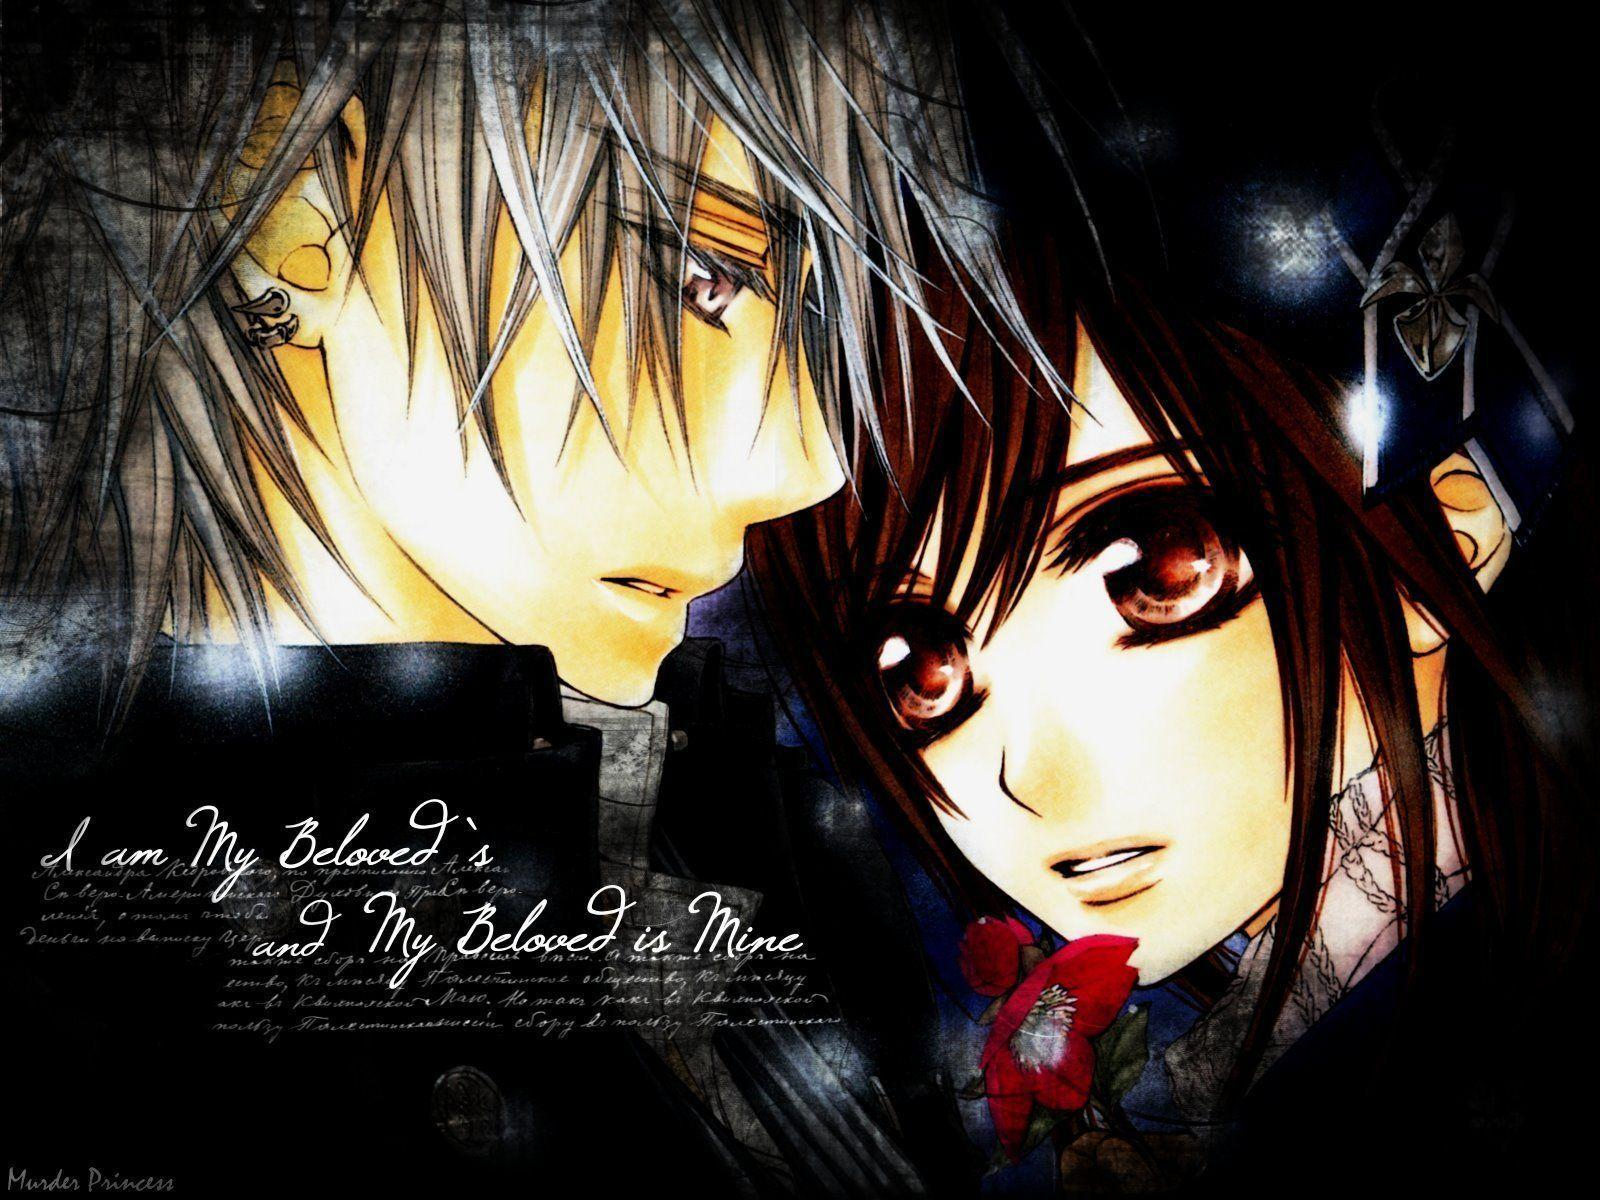 vampire knight wallpaper - photo #27